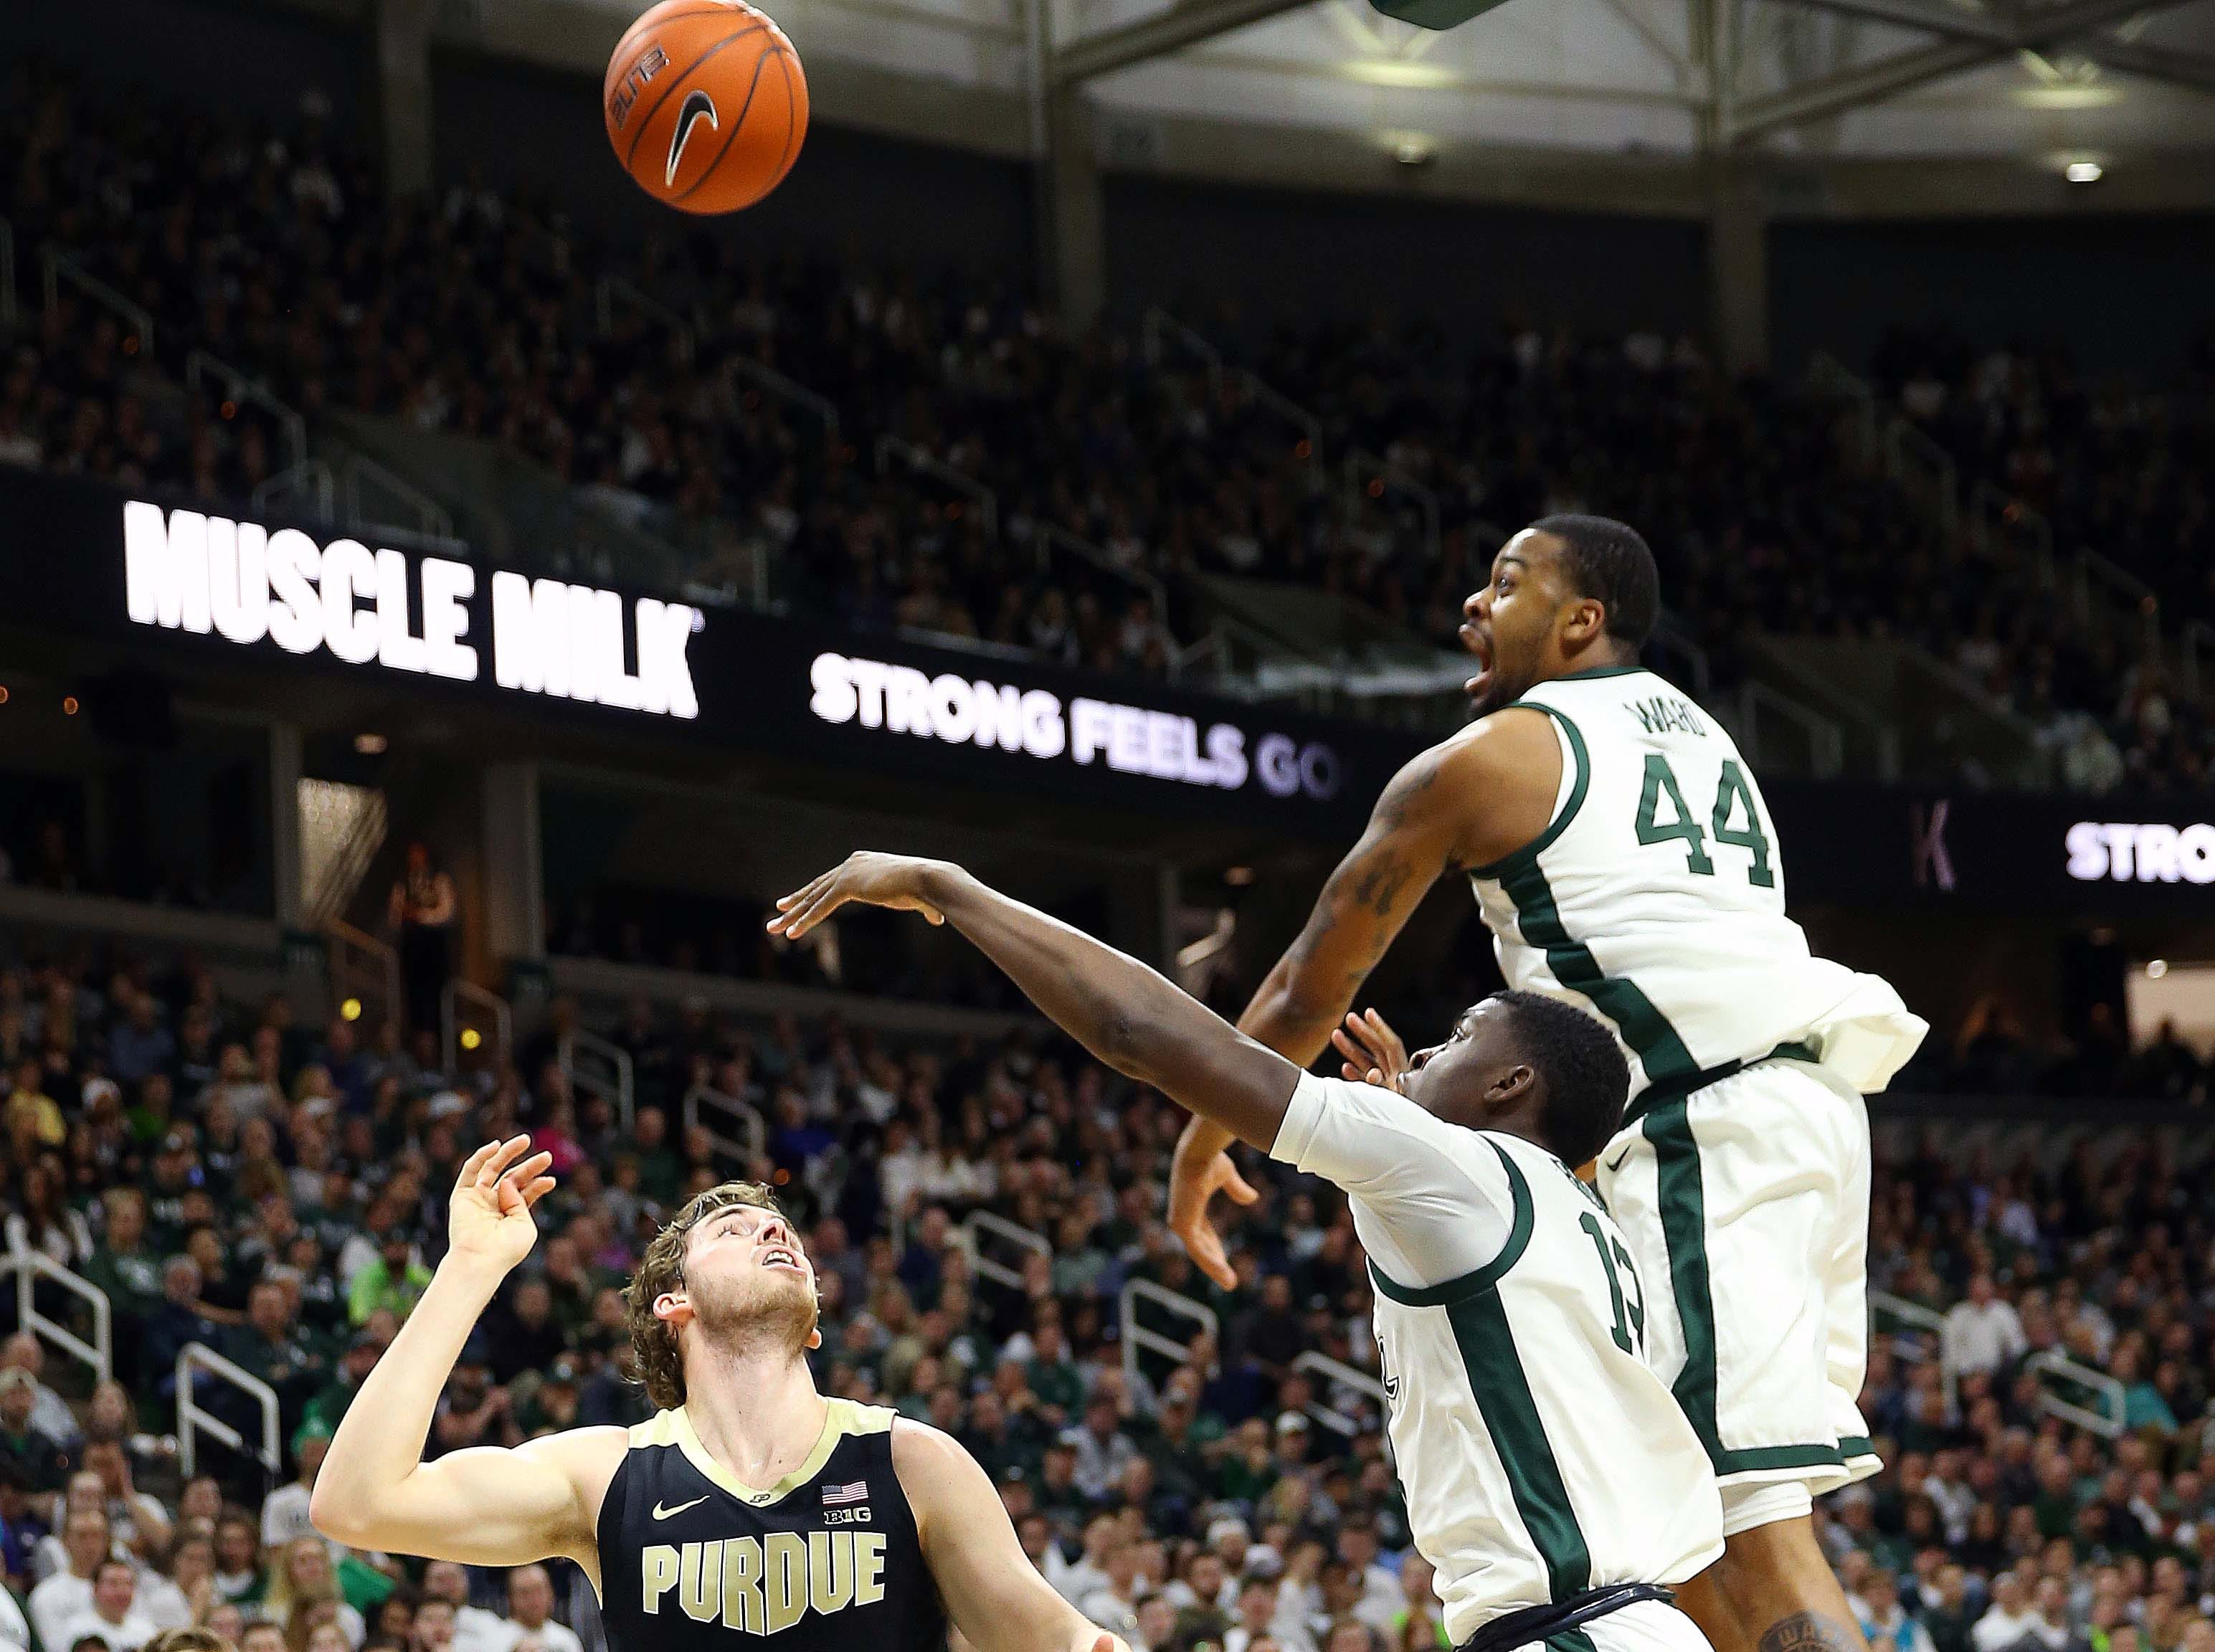 Jan 8, 2019; East Lansing, MI, USA; Purdue Boilermakers guard Ryan Cline (14) has his shot blocked by Michigan State Spartans forward Nick Ward (44) during the first half of a game at the Breslin Center. Mandatory Credit: Mike Carter-USA TODAY Sports